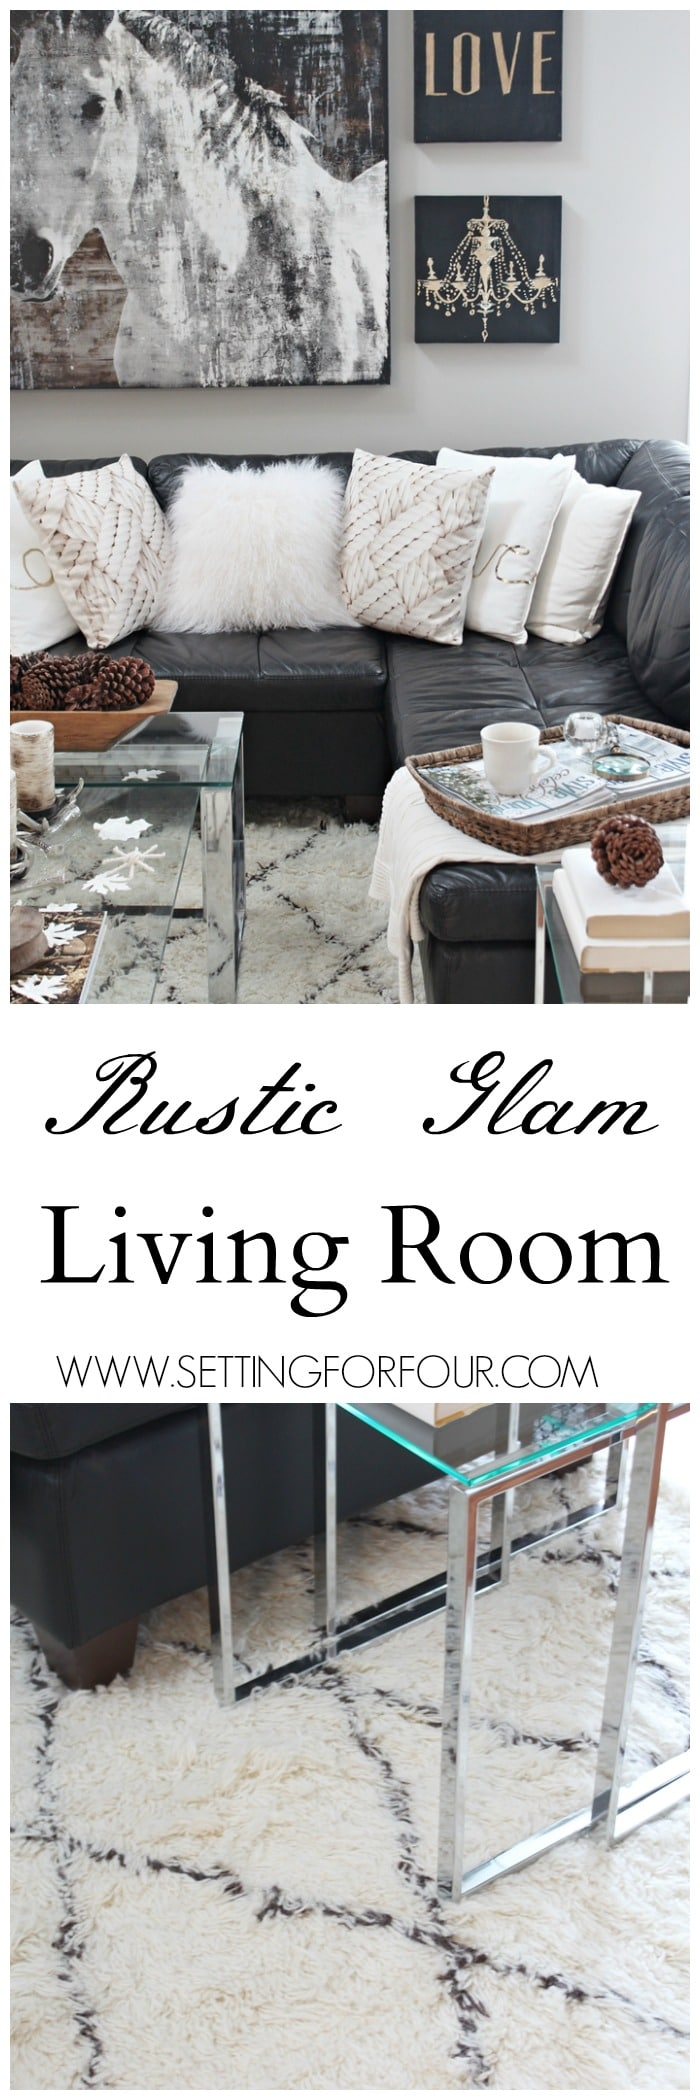 Come see my Rustic Glam living room makeover and new area rug! I'm also sharing Do's and Dont's, decor tips and tricks for choosing an area rug! www.settingforfour.com